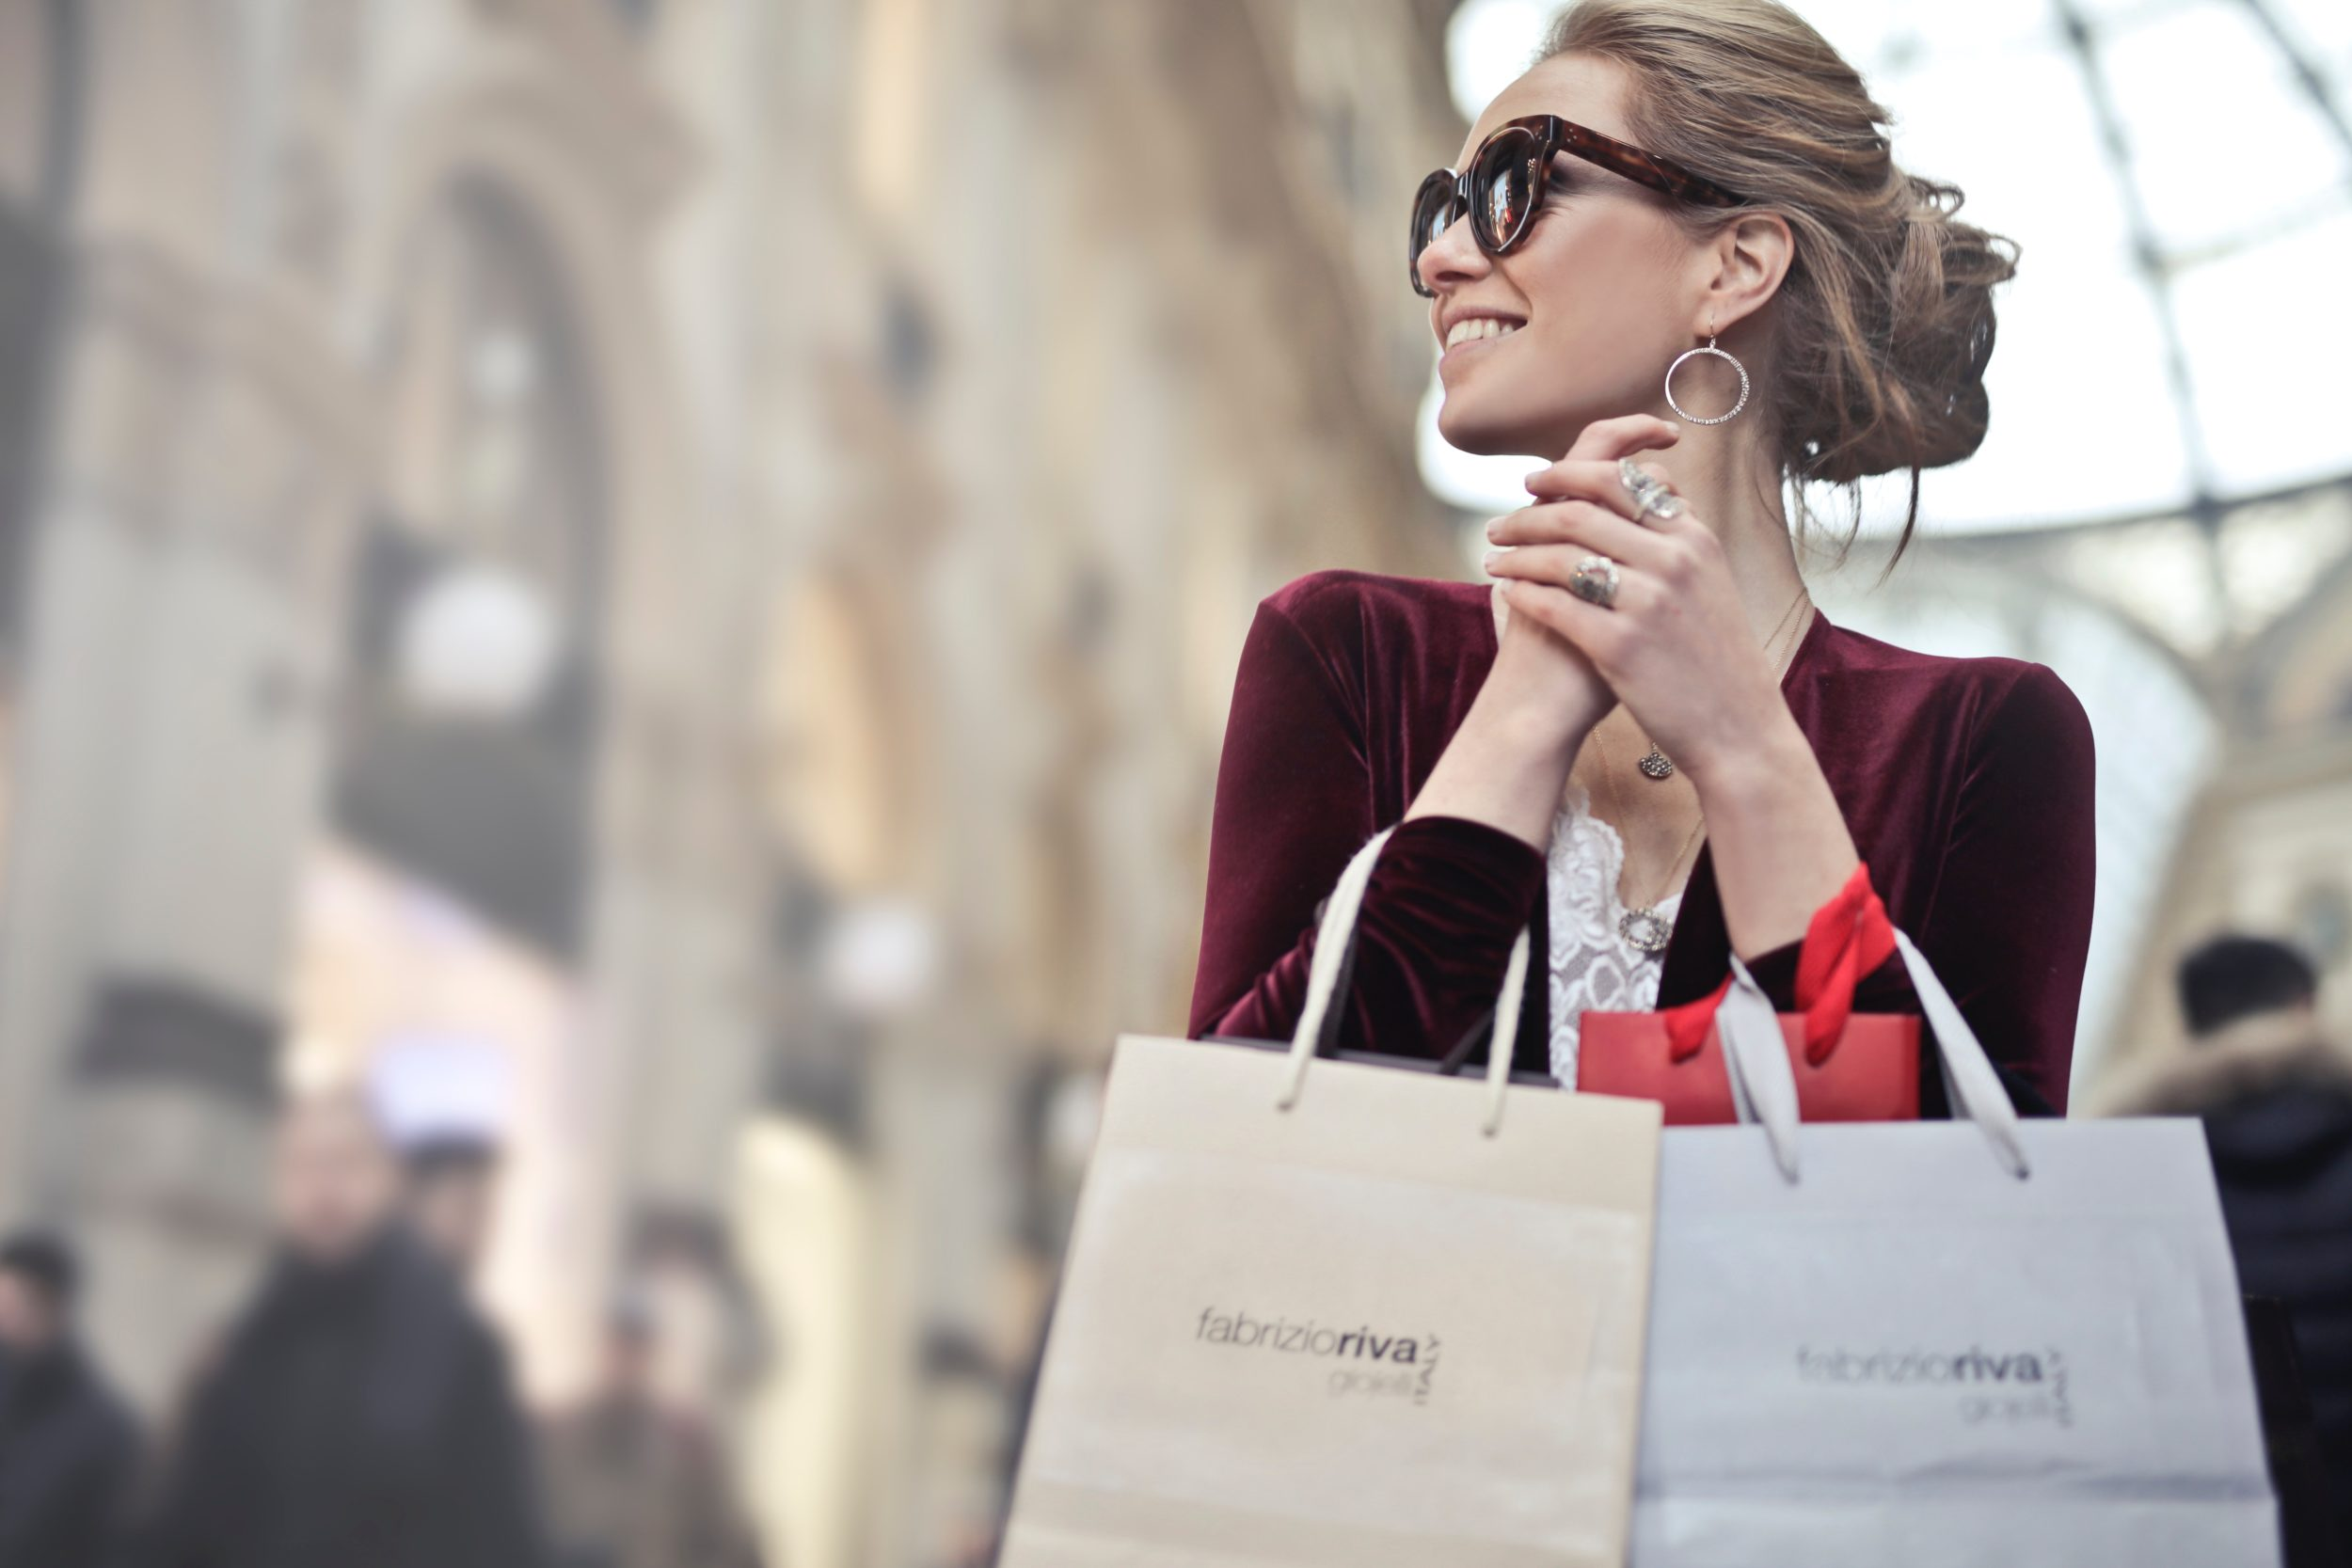 Woman-wearing-sunglasses-shopping-instagram-marketing-strategy